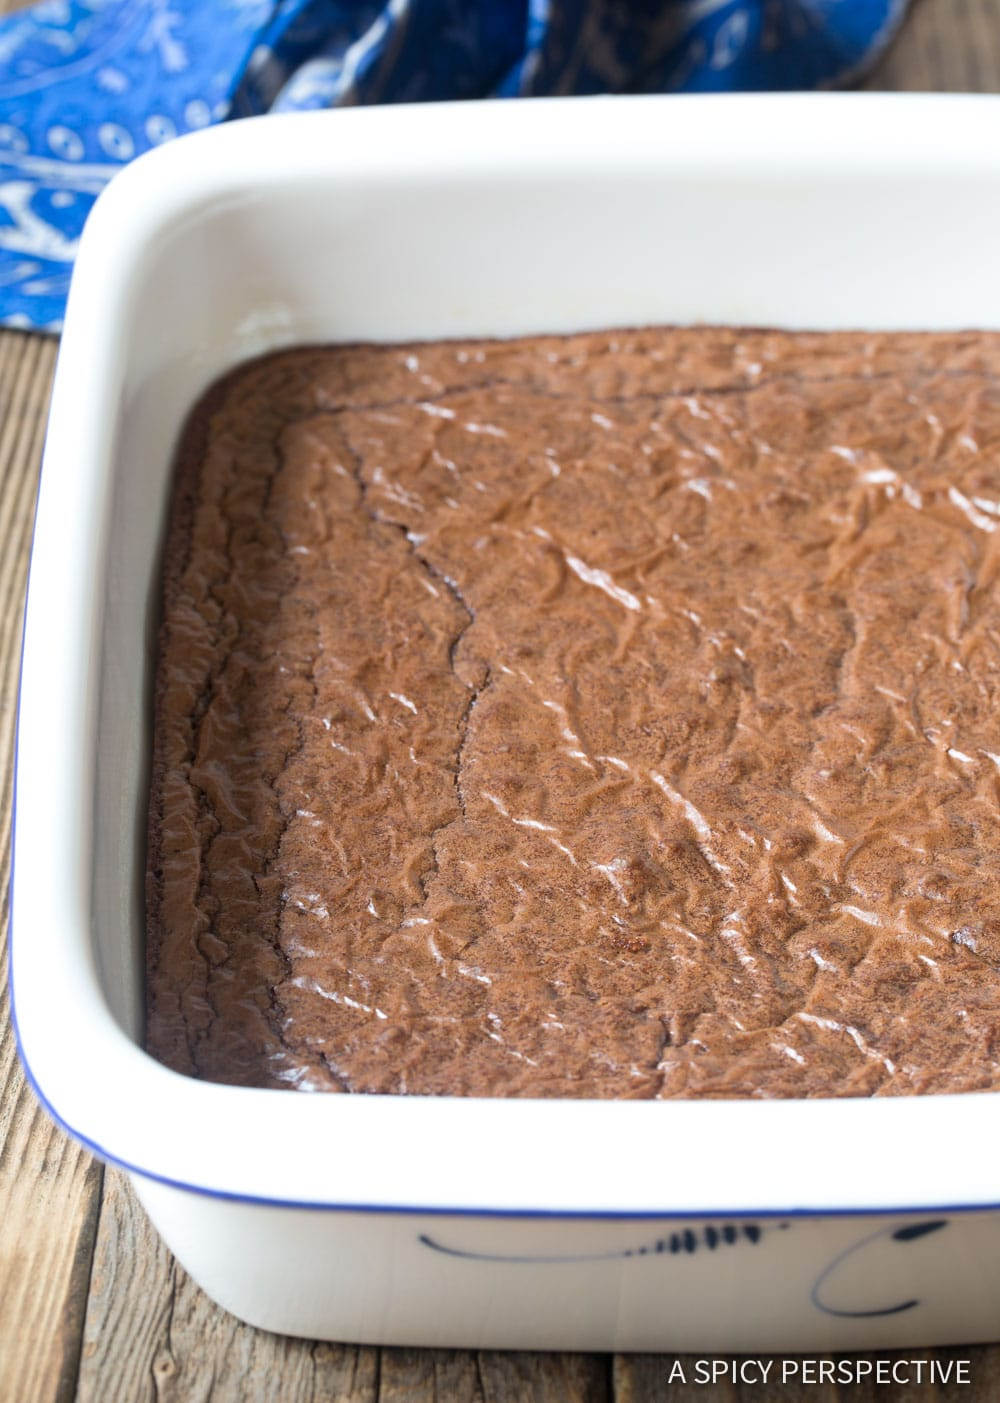 How To: French Silk Chocolate Brownies Recipe #ASpicyPerspective